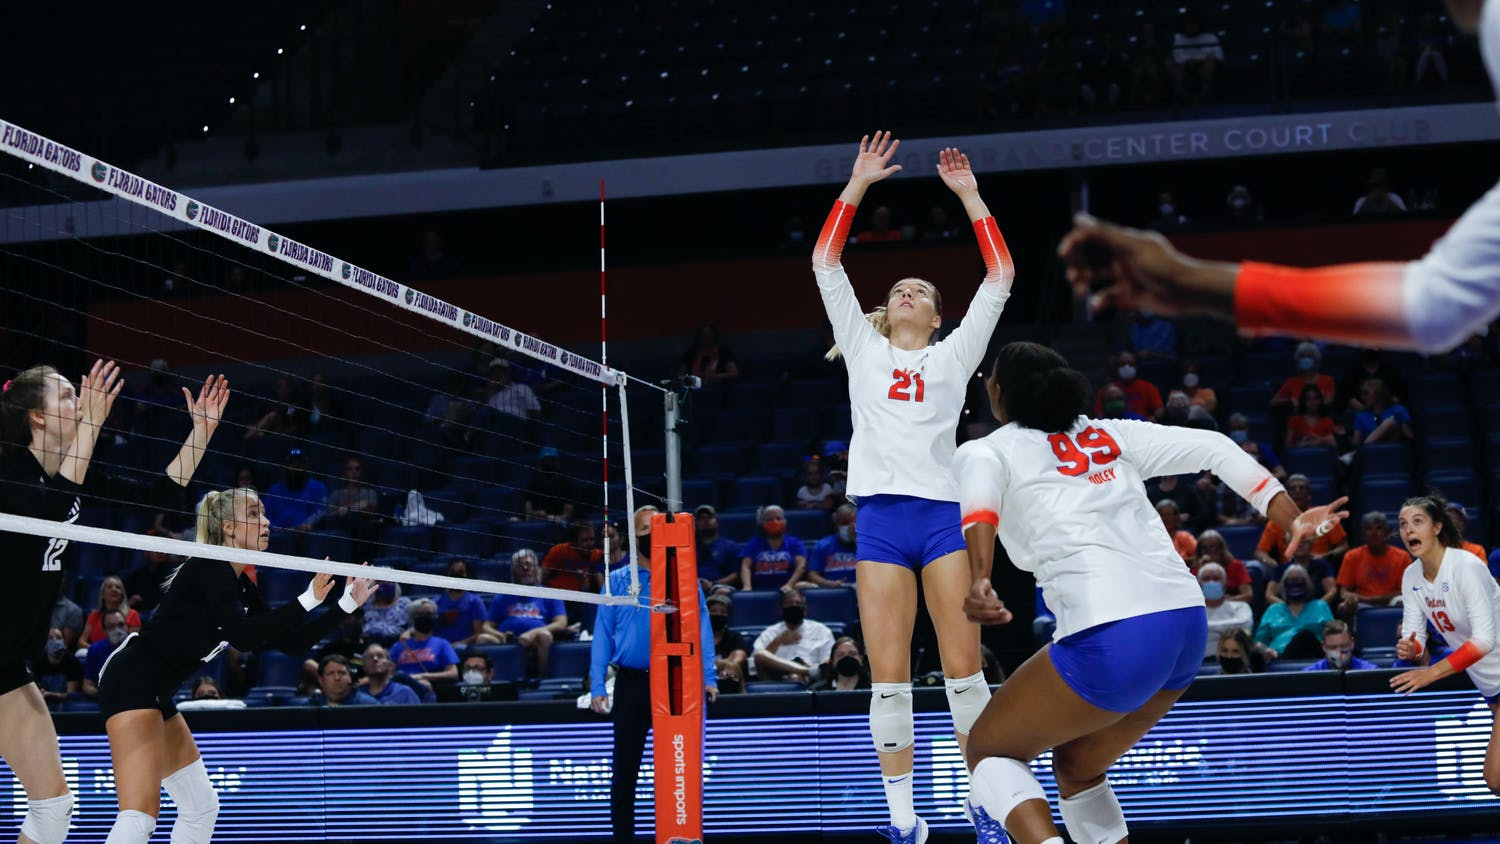 Florida's Marlie Monserez jumps to set the ball against Texas A&M on Oct. 16.